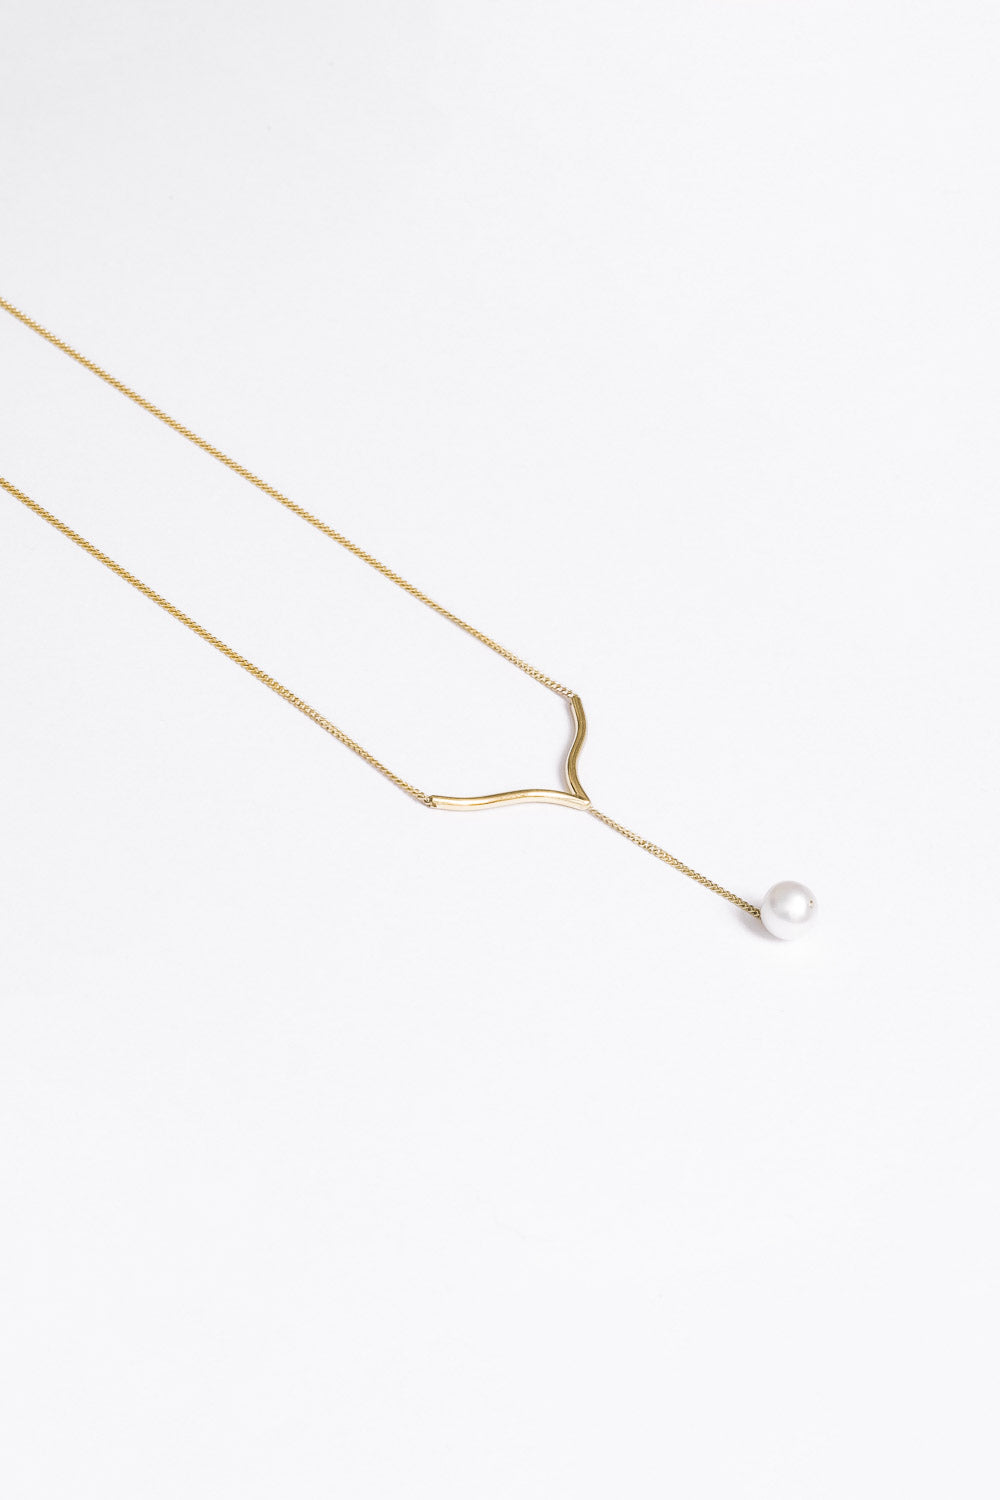 Delphine Necklace | 9K Yellow Gold